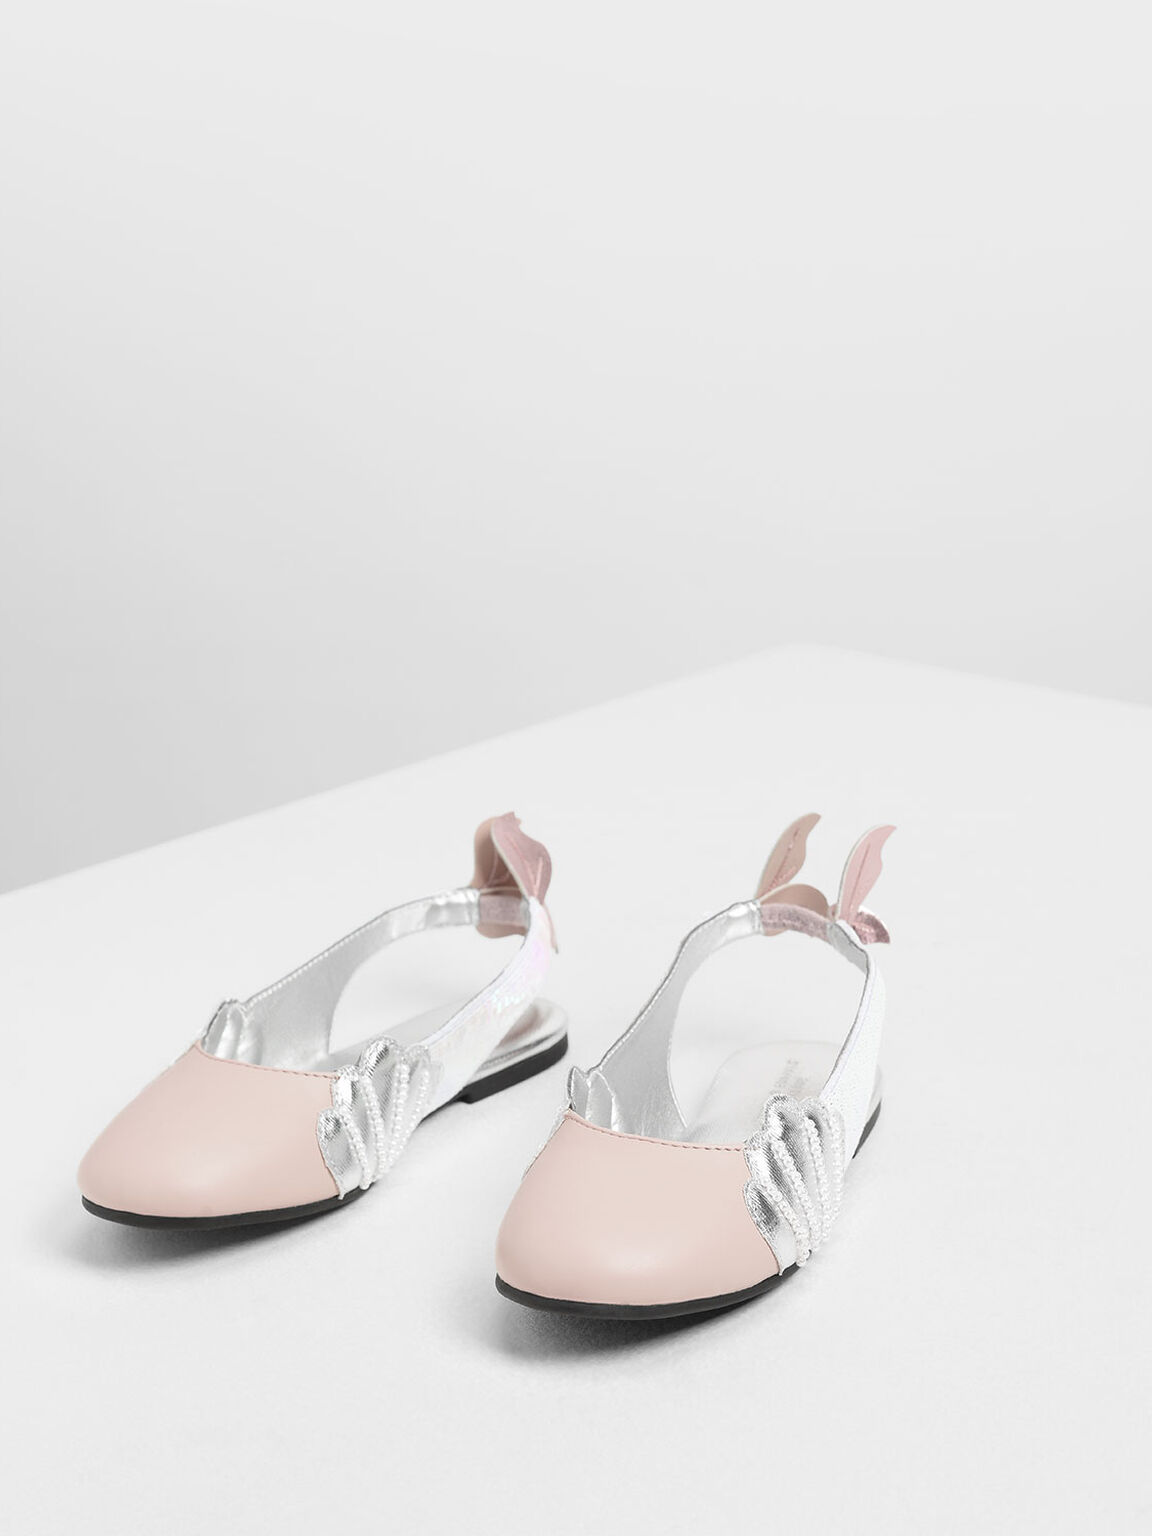 Girls' Seashell Slingback Shoes, Pink, hi-res